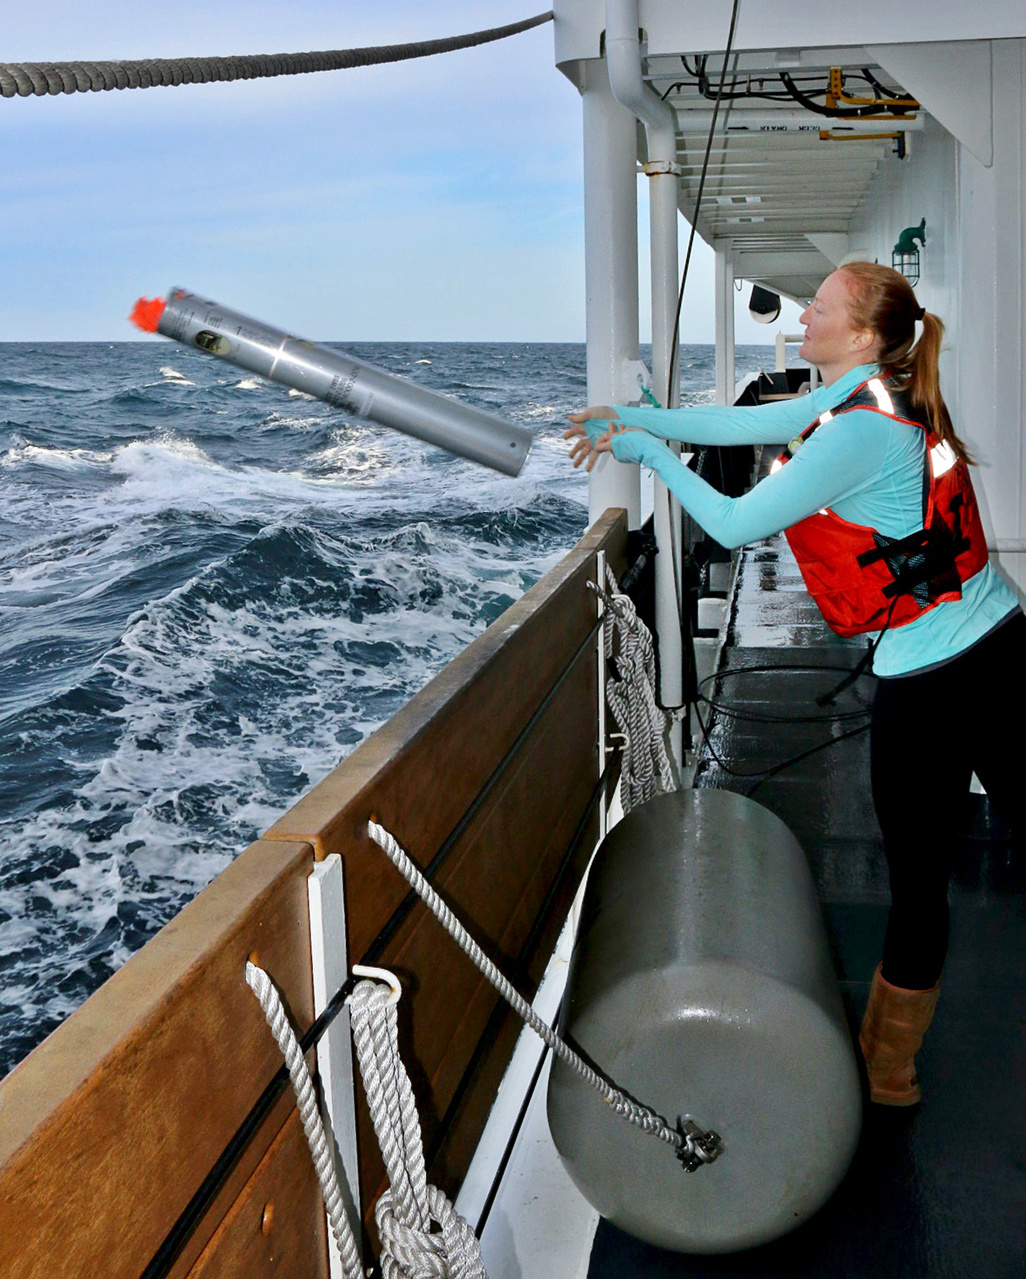 NOAA Fisheries scientist Jessica Crance deploys a sonobuoy to acoustically monitor for North Pacific right whale calls.